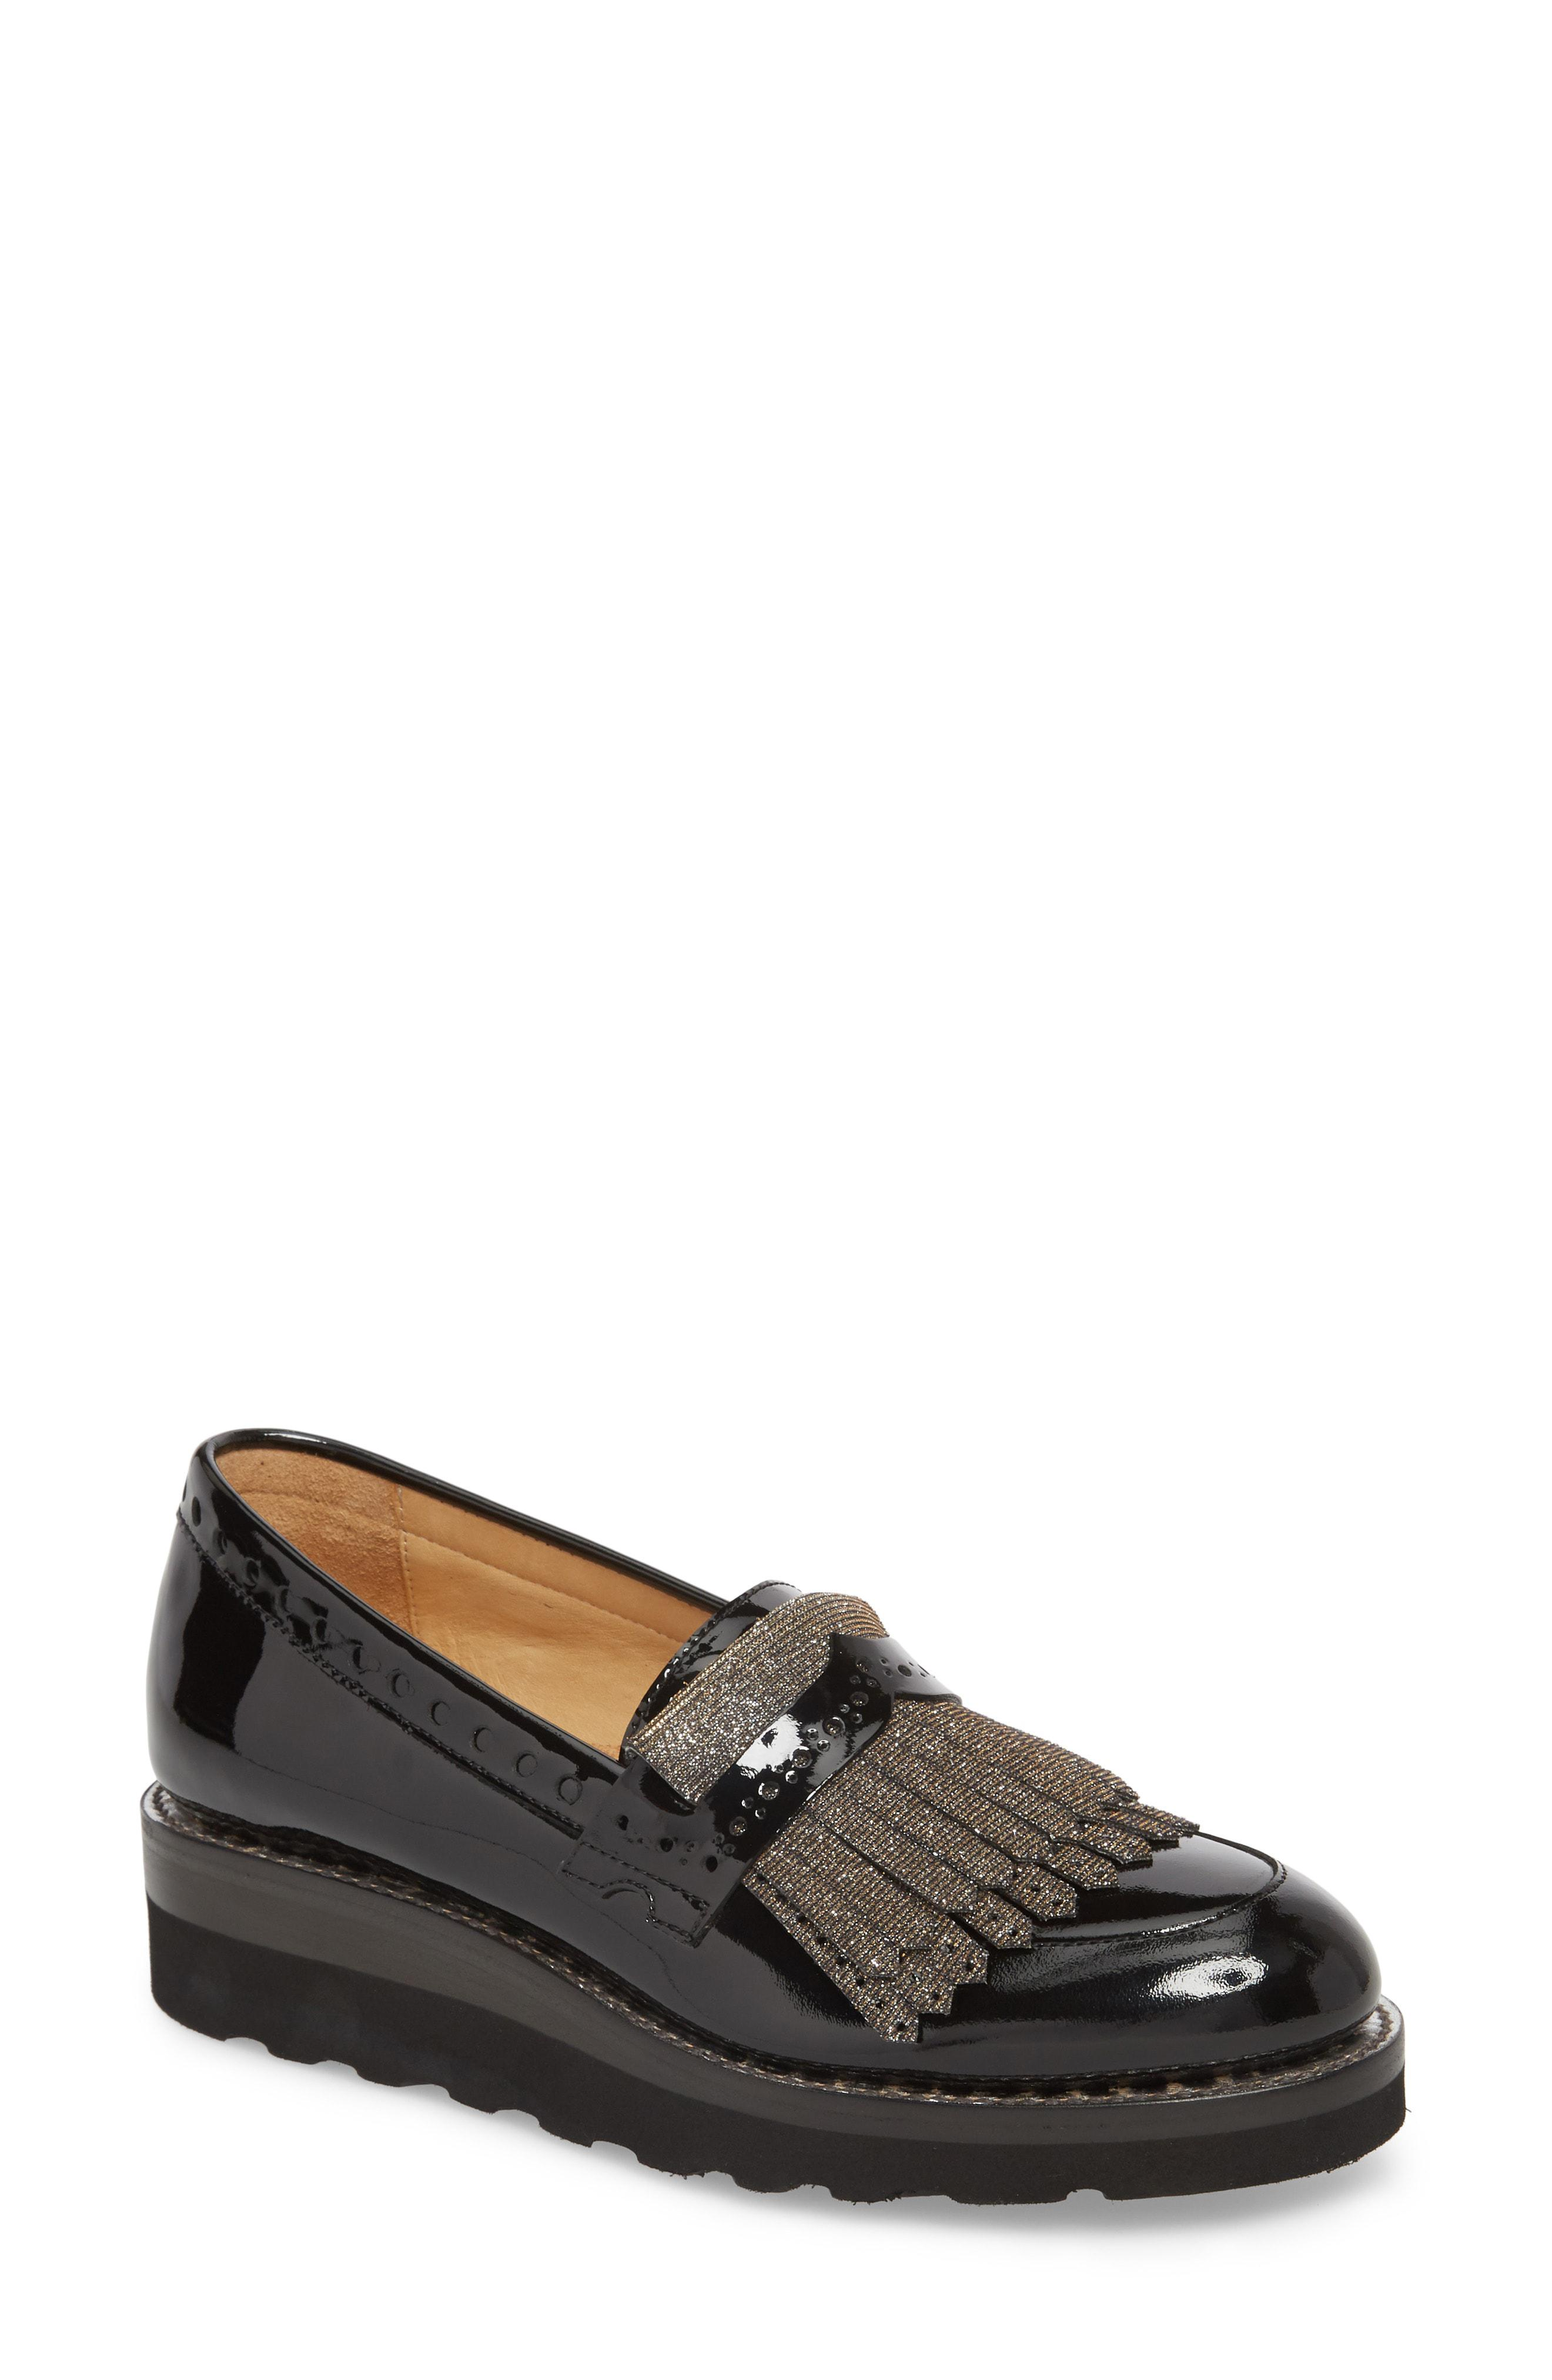 b529f5257a1 Lyst - The Office Of Angela Scott Mr. Pennywise Wedge Loafer in Black